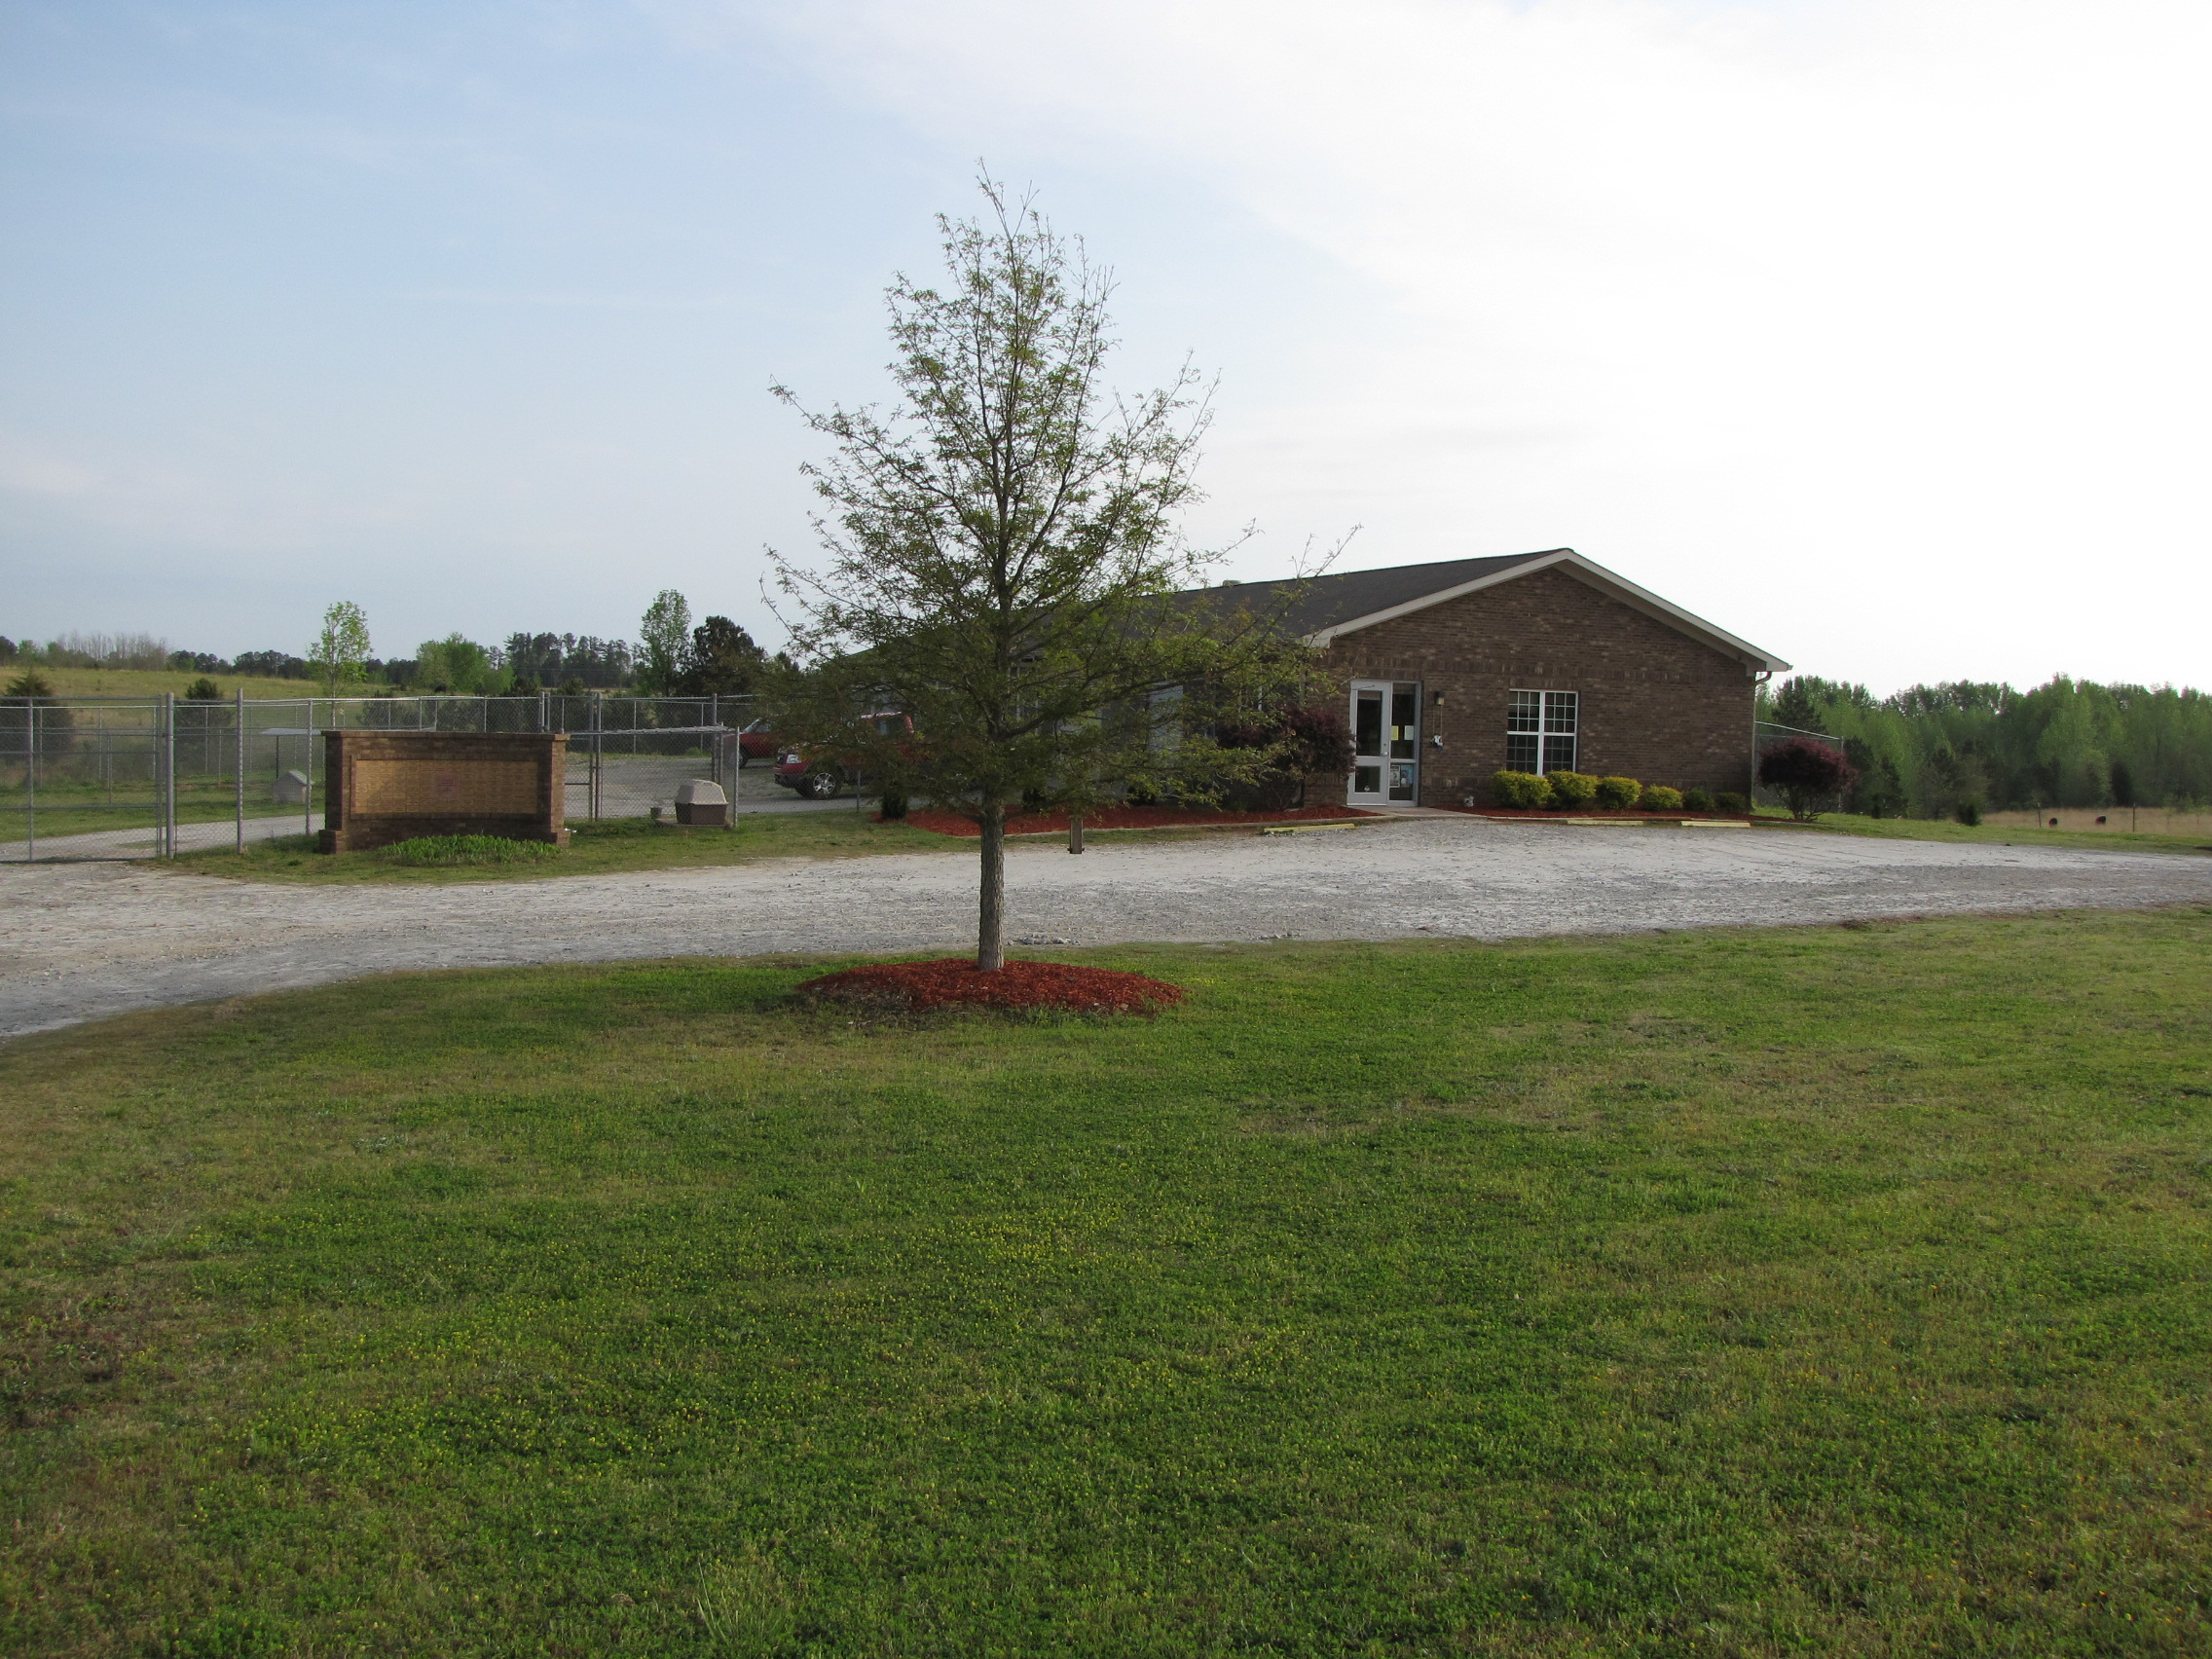 Meriwether County Animal Shelter